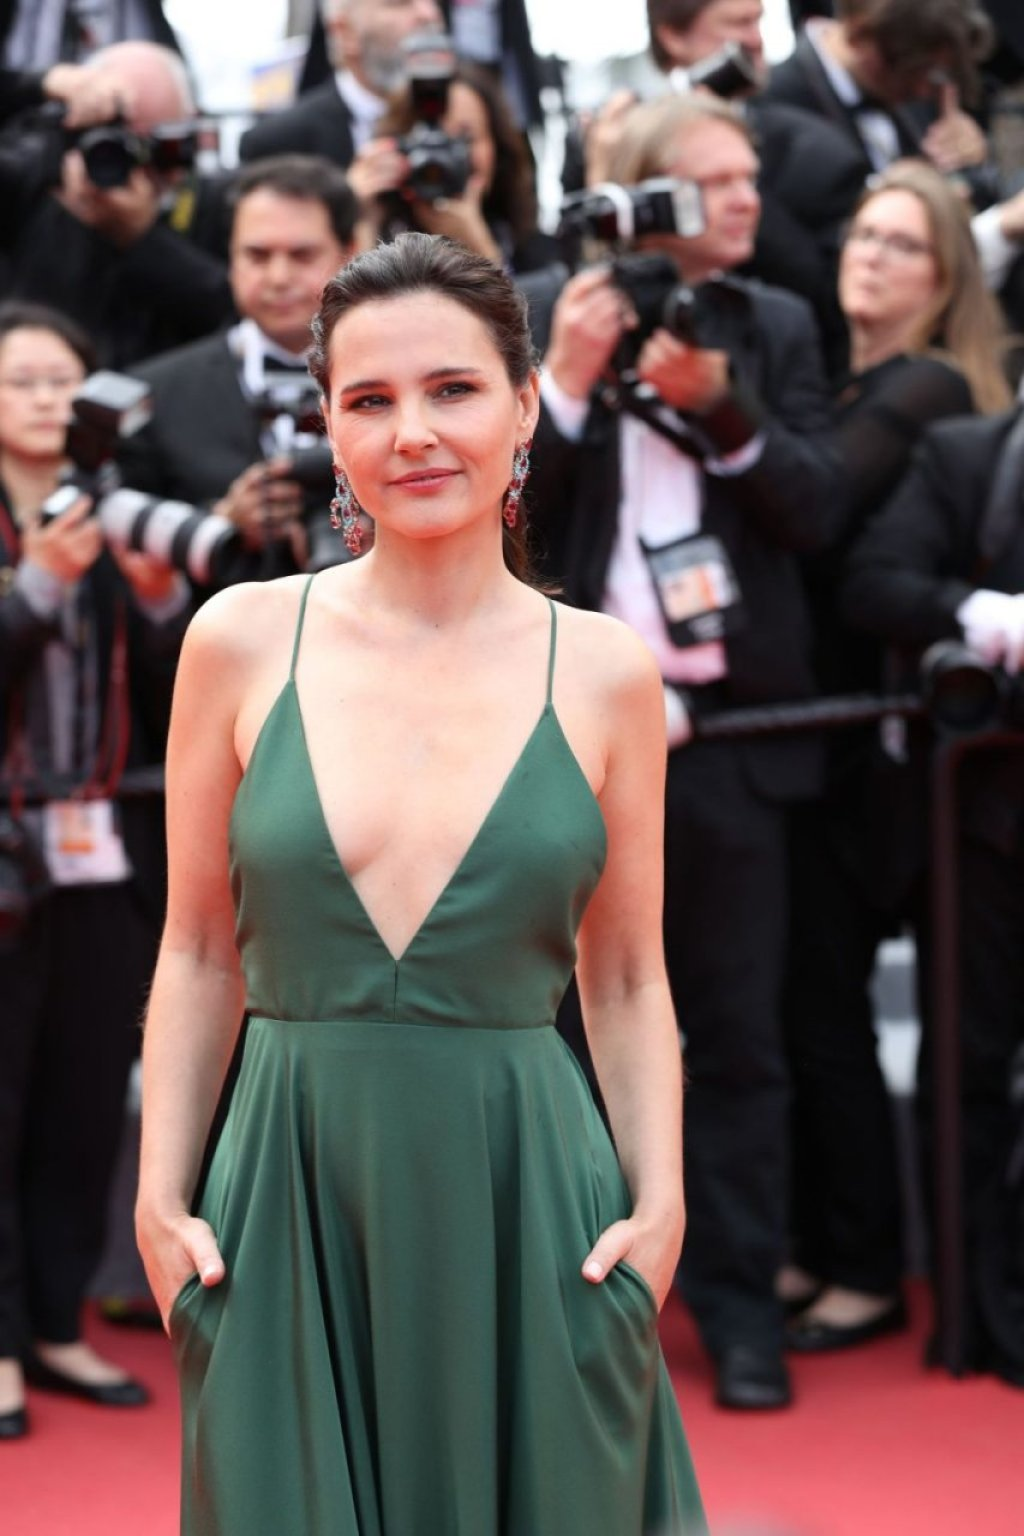 Virginie Ledoyen Braless (48 Photos)